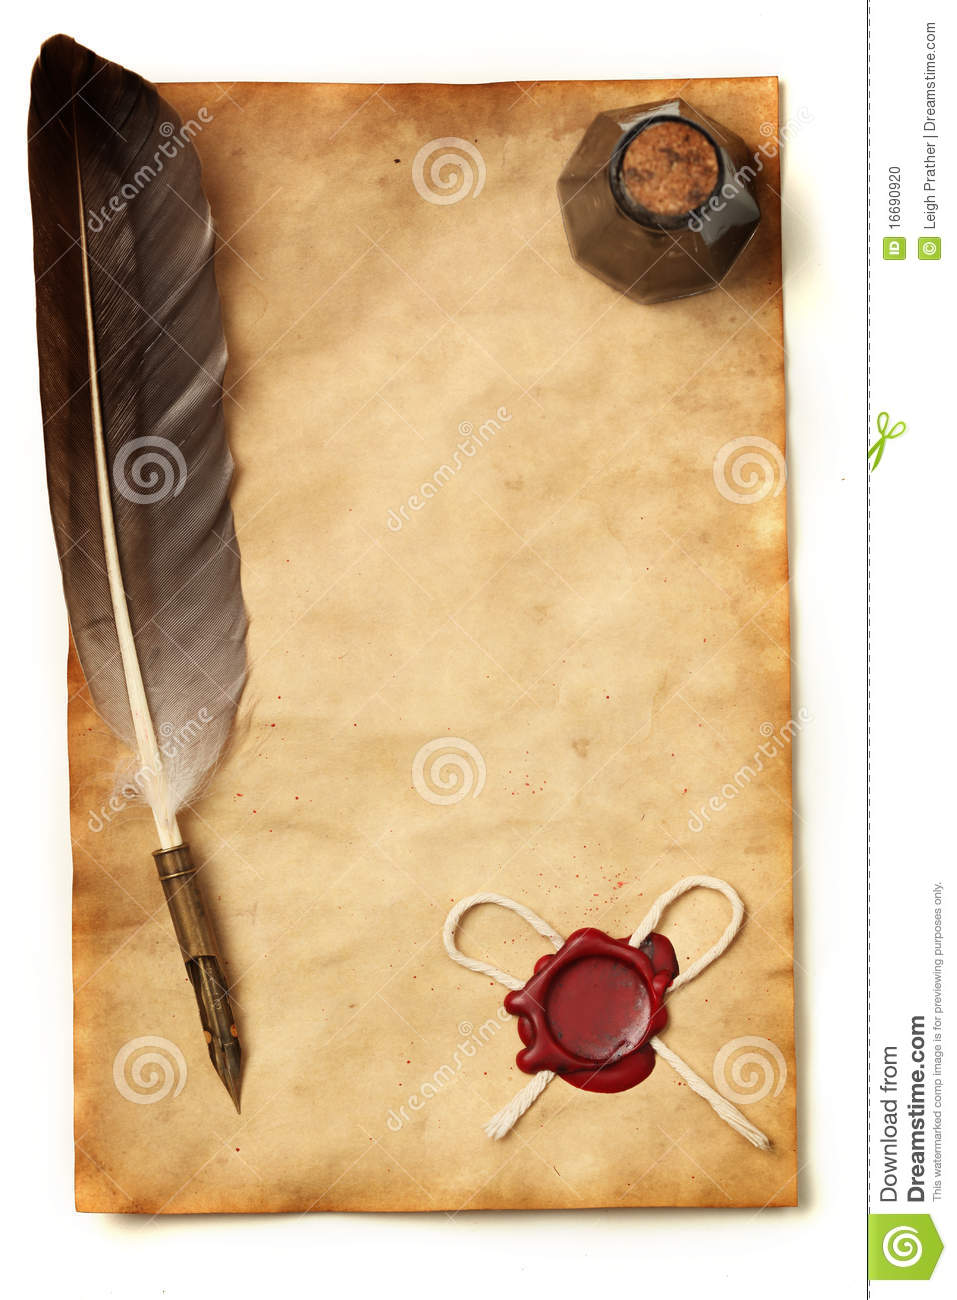 Paper With Wax Seal, Quill & Ink Stock Photo - Image: 16690920